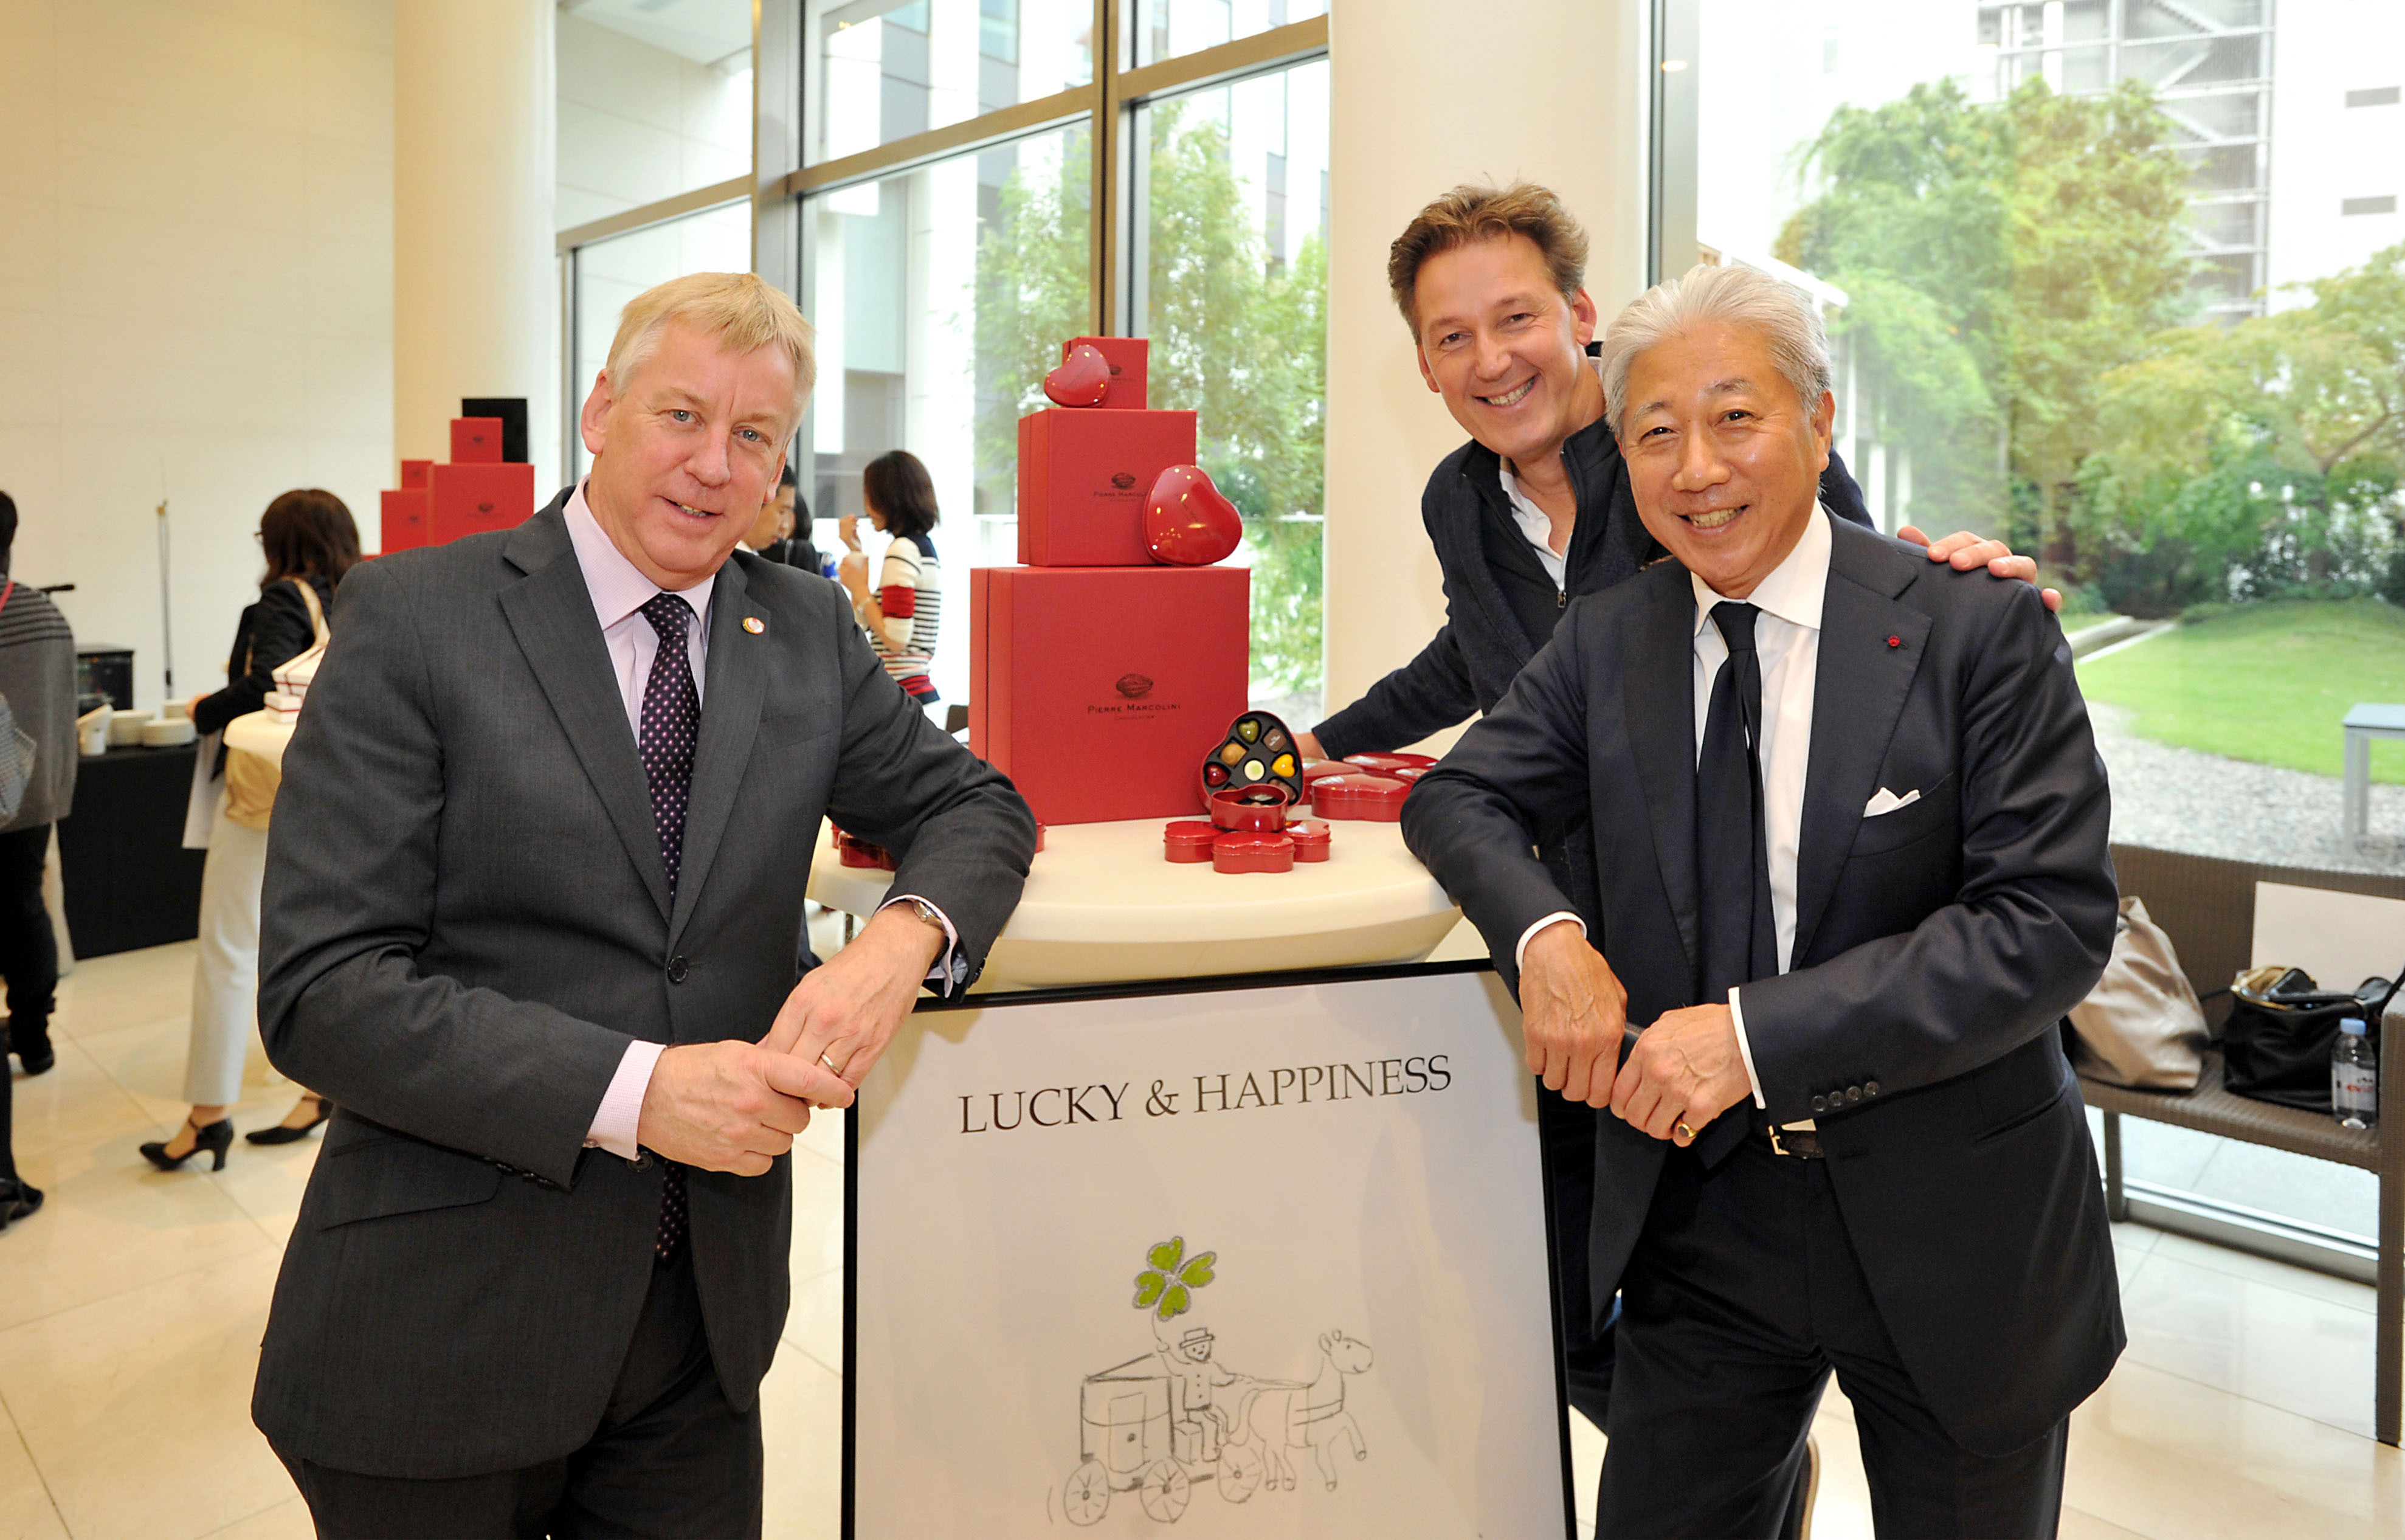 Belgian chocolatier Pierre Marcolini (second from right) poses with Belgian Ambassador Gunther Sleeuwagen (left) and Yushi Tajima, president of The Cream of the Crop and Co., on a visit to Japan to announce new products for next St. Valentine's and White days at the Belgian embassy in Tokyo on Oct. 15.  | YOSHIAKI MIURA